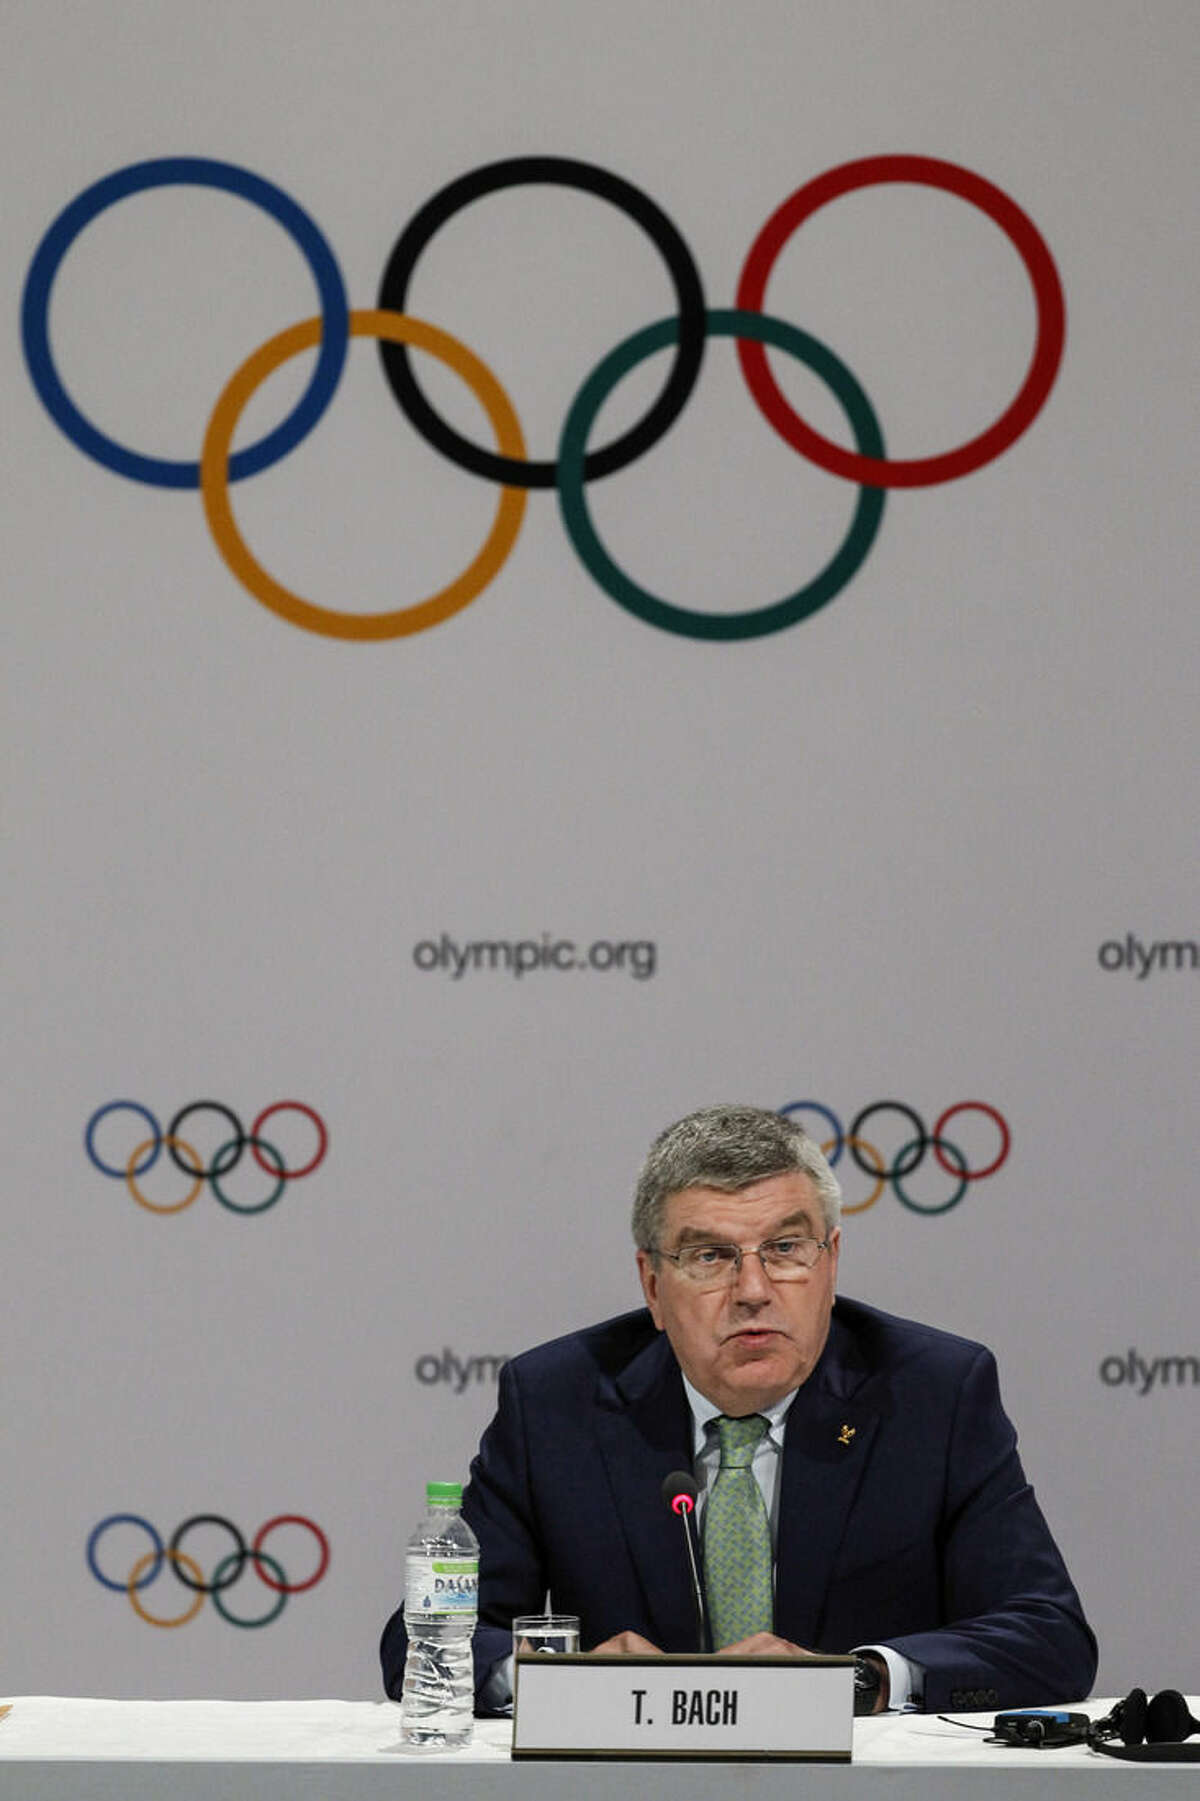 International Olympic Committee (IOC) President Thomas Bach speaks during a press conference in Kuala Lumpur, Malaysia, Wednesday, July, 29, 2015. Malaysia is hosting the 128th IOC executive board meeting where the vote for the host cities of the 2022 Olympic Winter Games and for the 2020 Youth Olympic Winter Games will take place. (AP Photo/Joshua Paul)